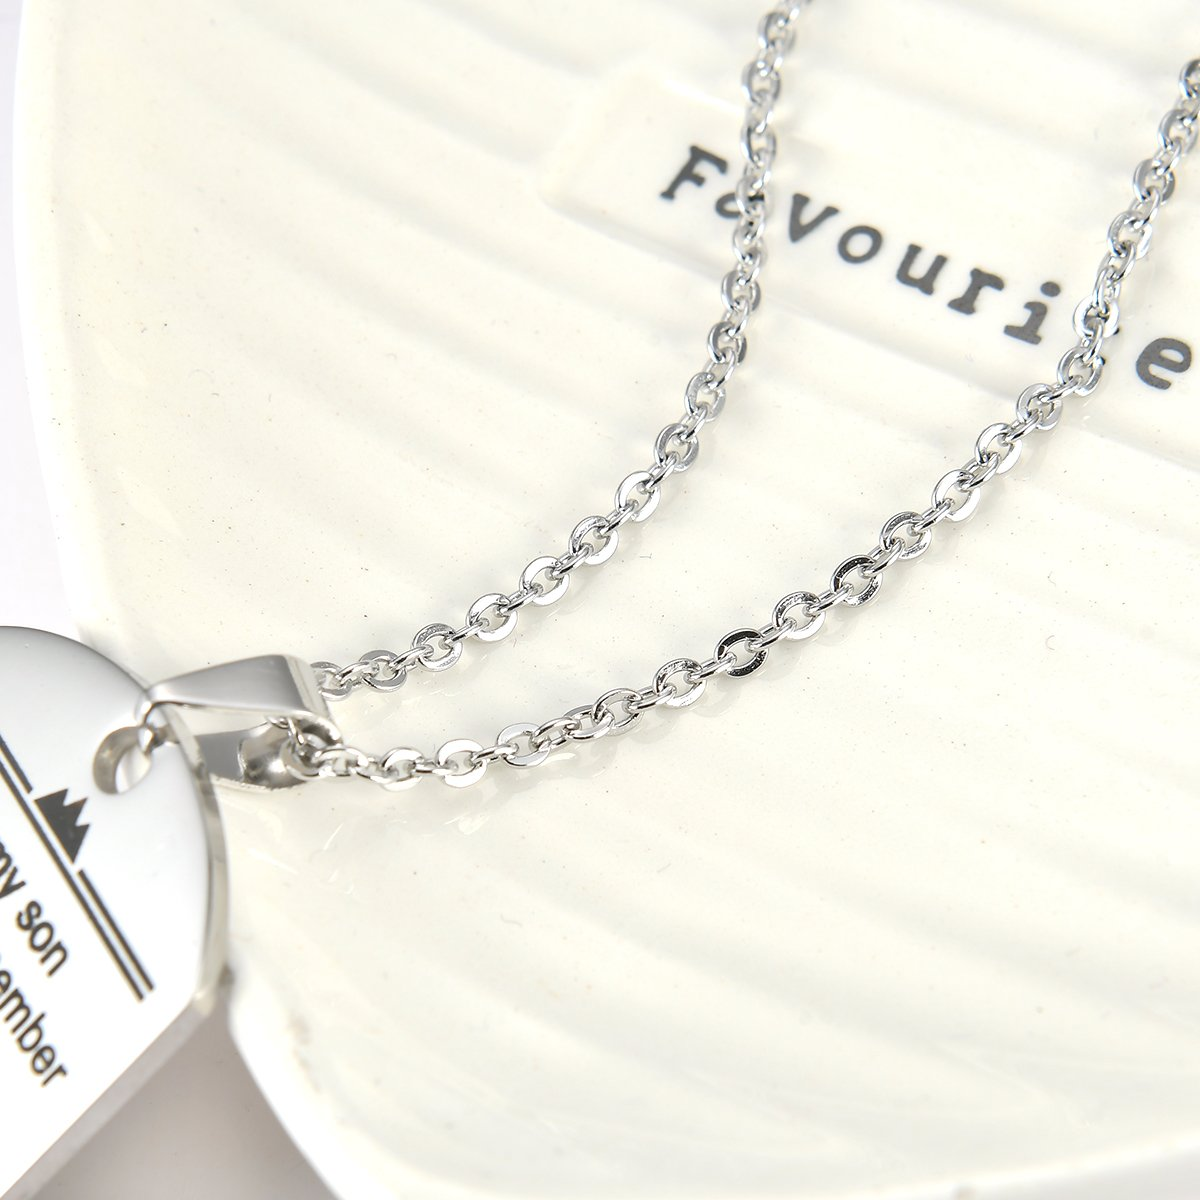 Stainless Steel Dog Tag Letters ''To my son....love mom'' Pendant Necklace,Inspirational Gifts For Son Jewelry by danjie (Image #6)